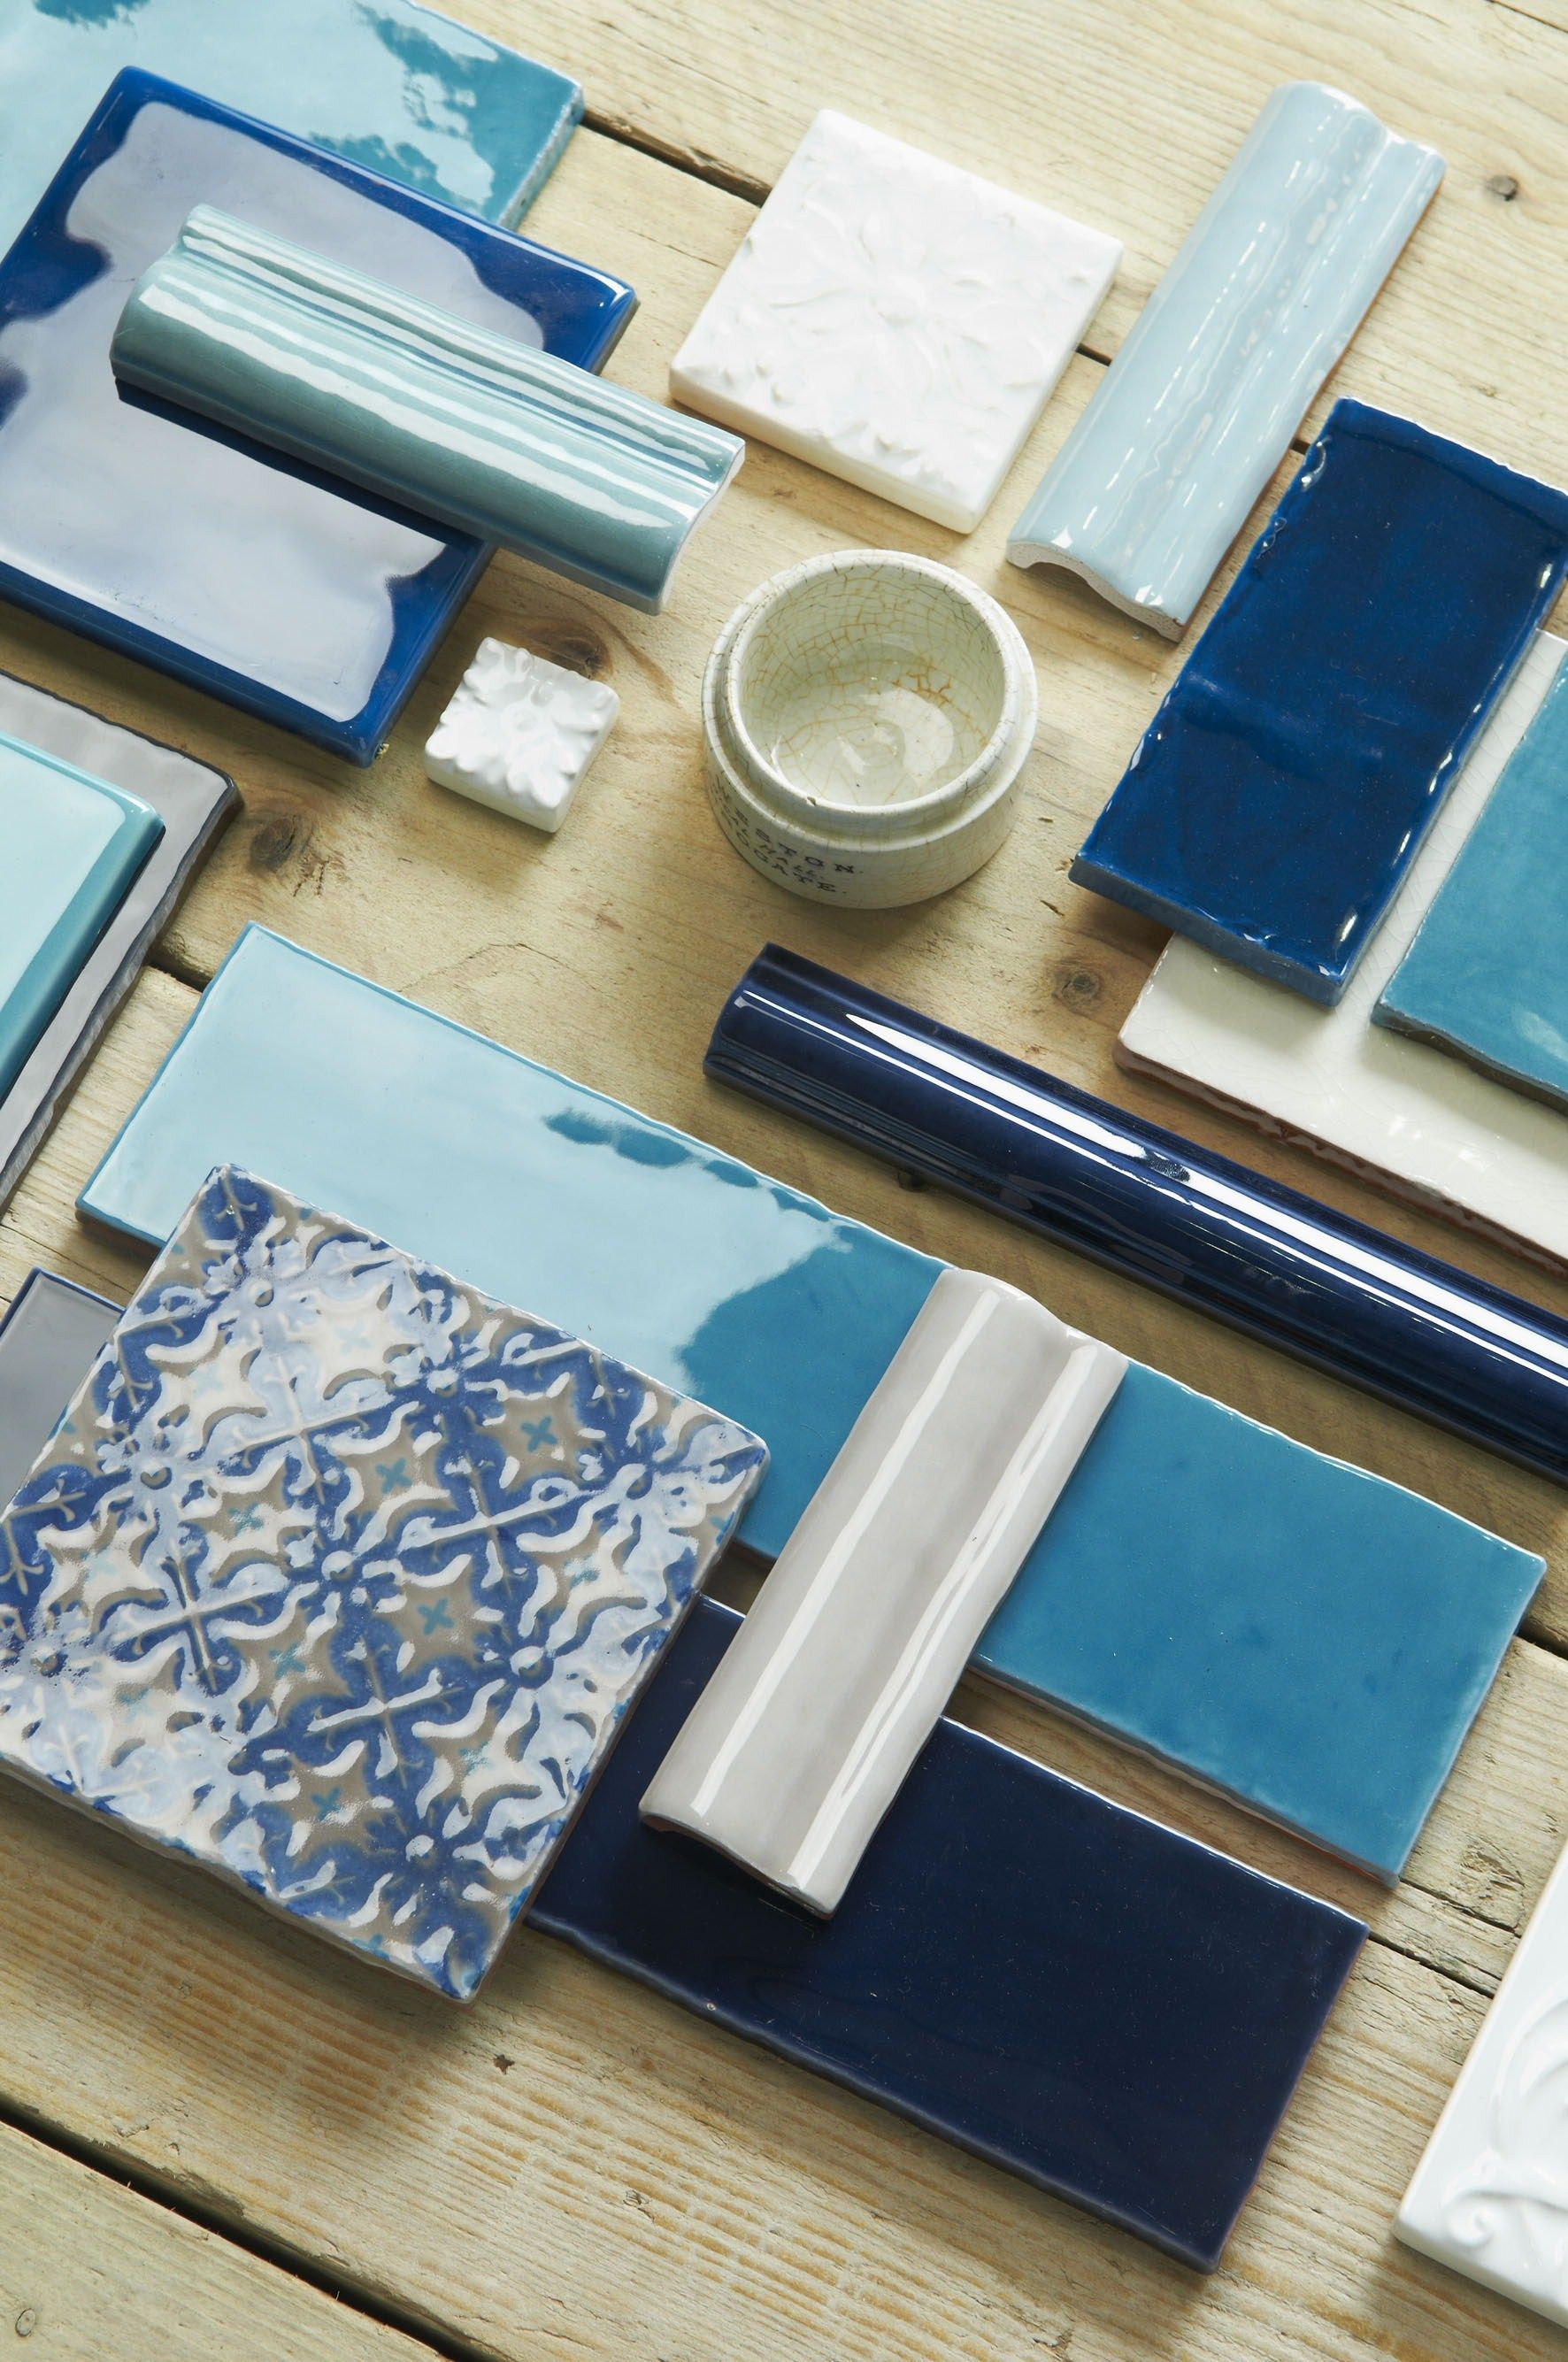 Decorative Tile Board There's A Distinctively Coastal Feel To This Blue Mood Board From